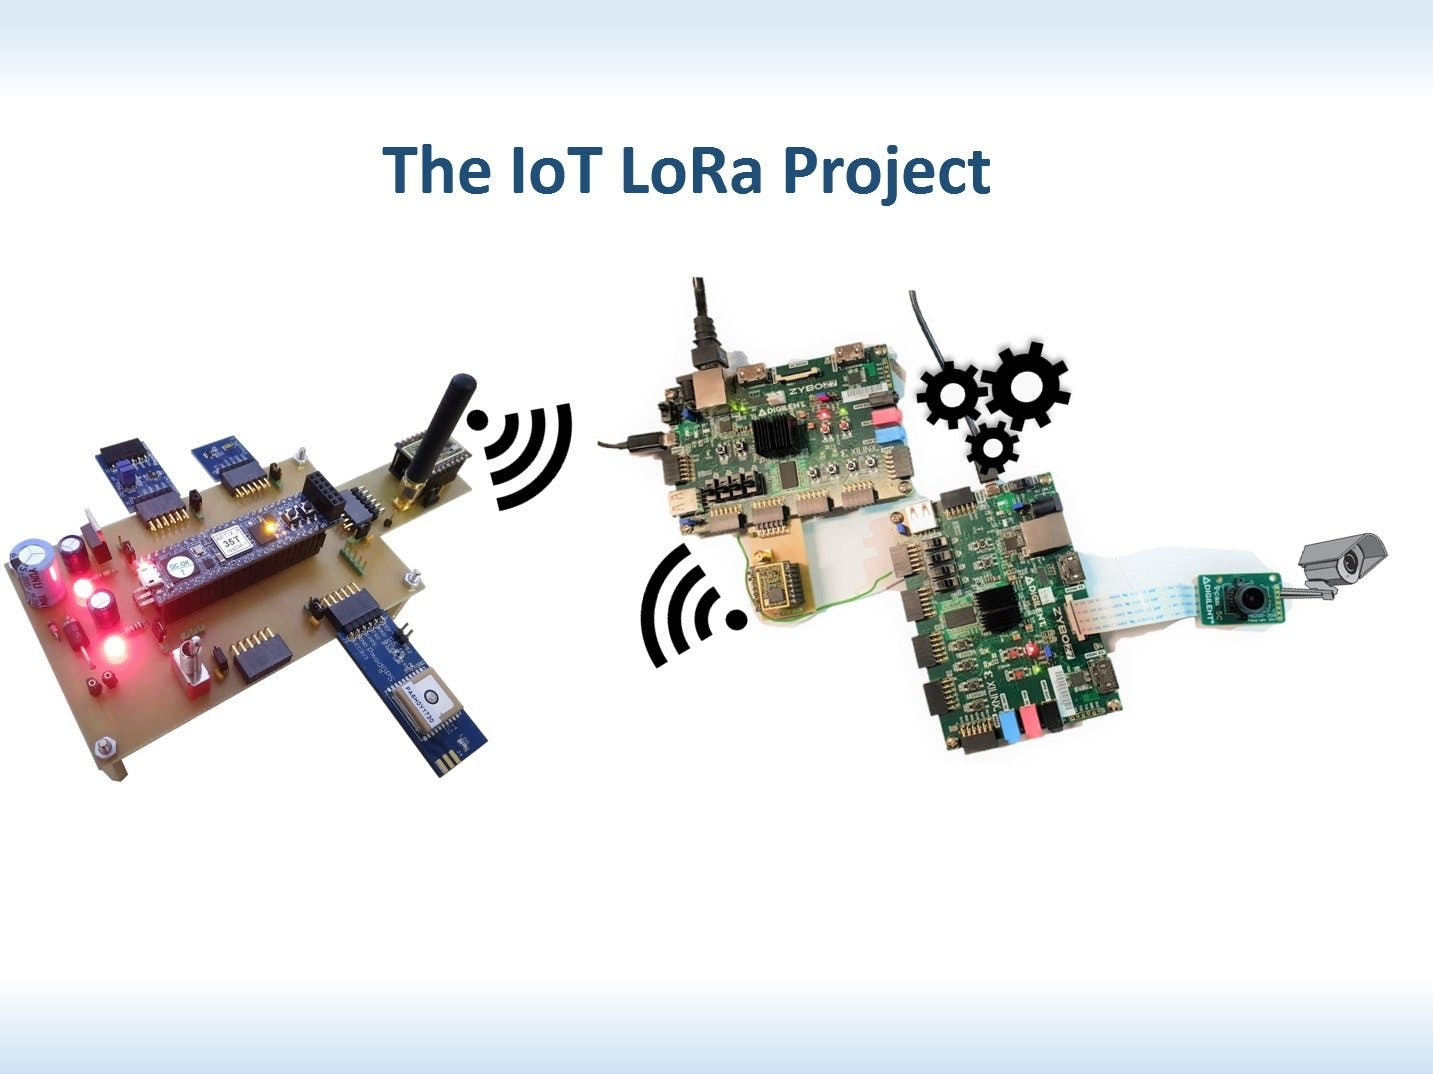 The IoT LoRa Project